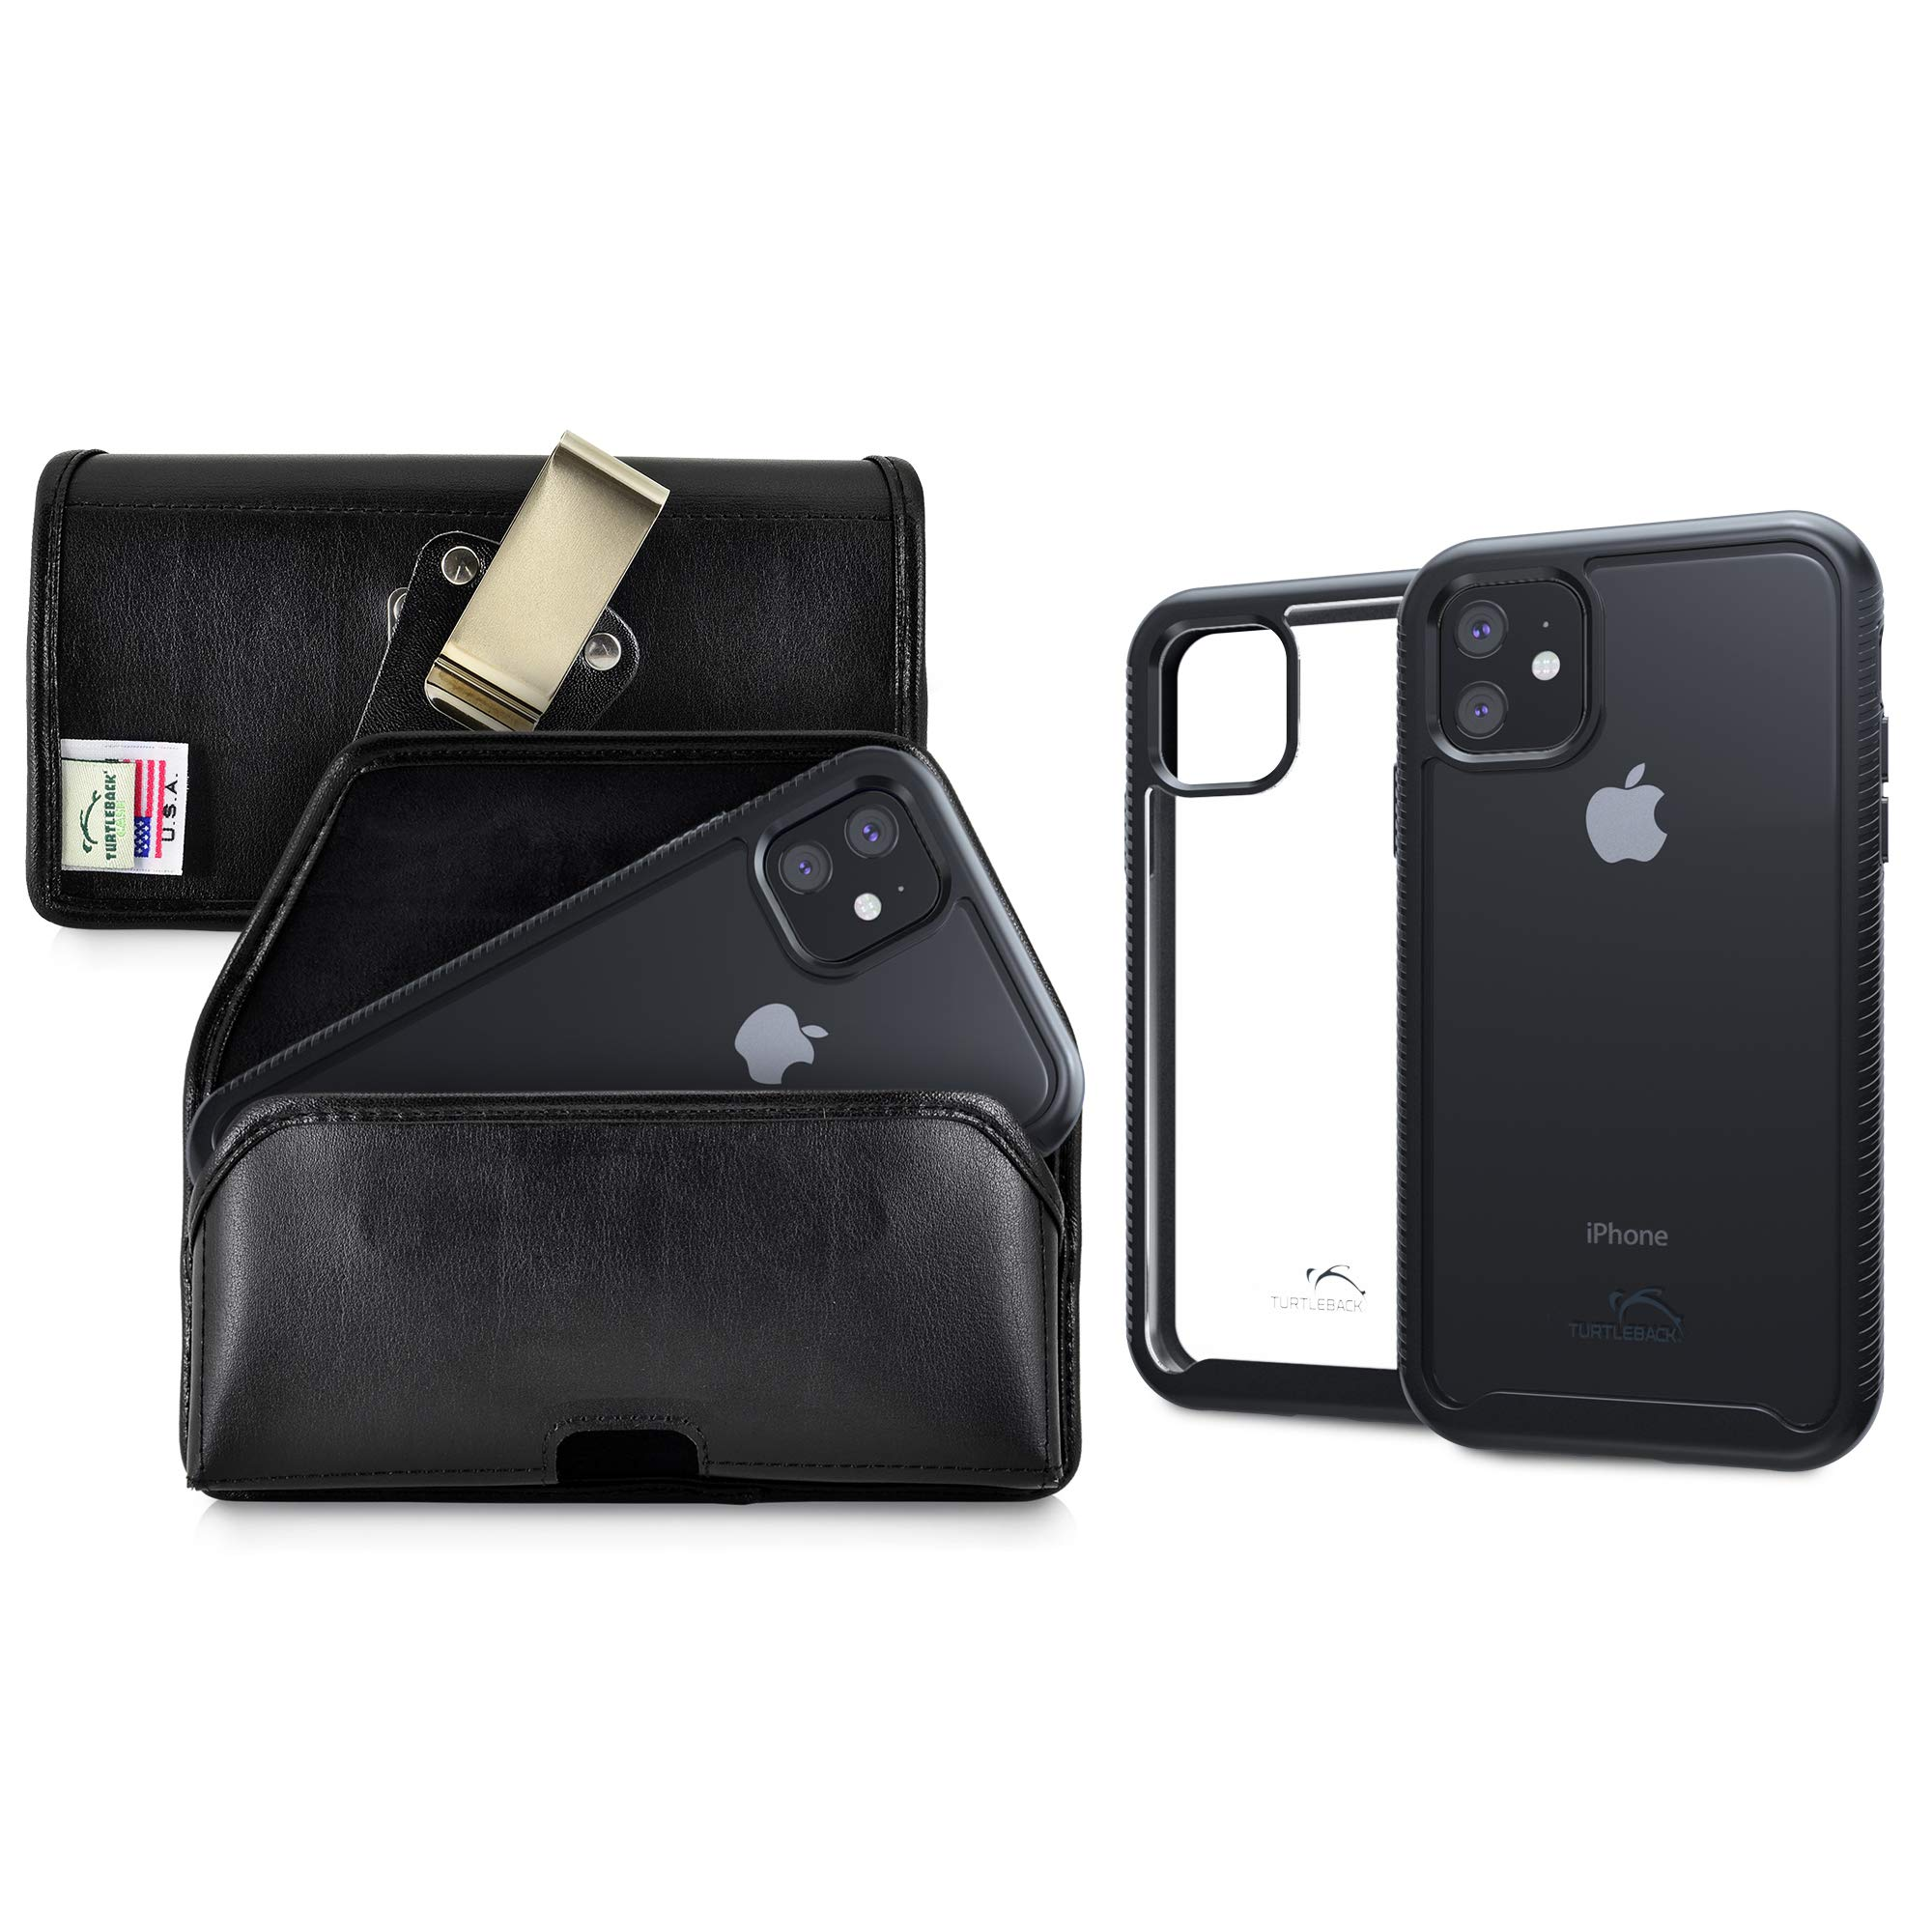 Turtleback Tough Defense Case/Pouch Combo Designed for New iPhone 11 (2019) 6.1 Inch, Military Grade Drop Tested Ultra Clear Back, Fitted in Leather Holster, Rotating Clip-Horizontal/Black